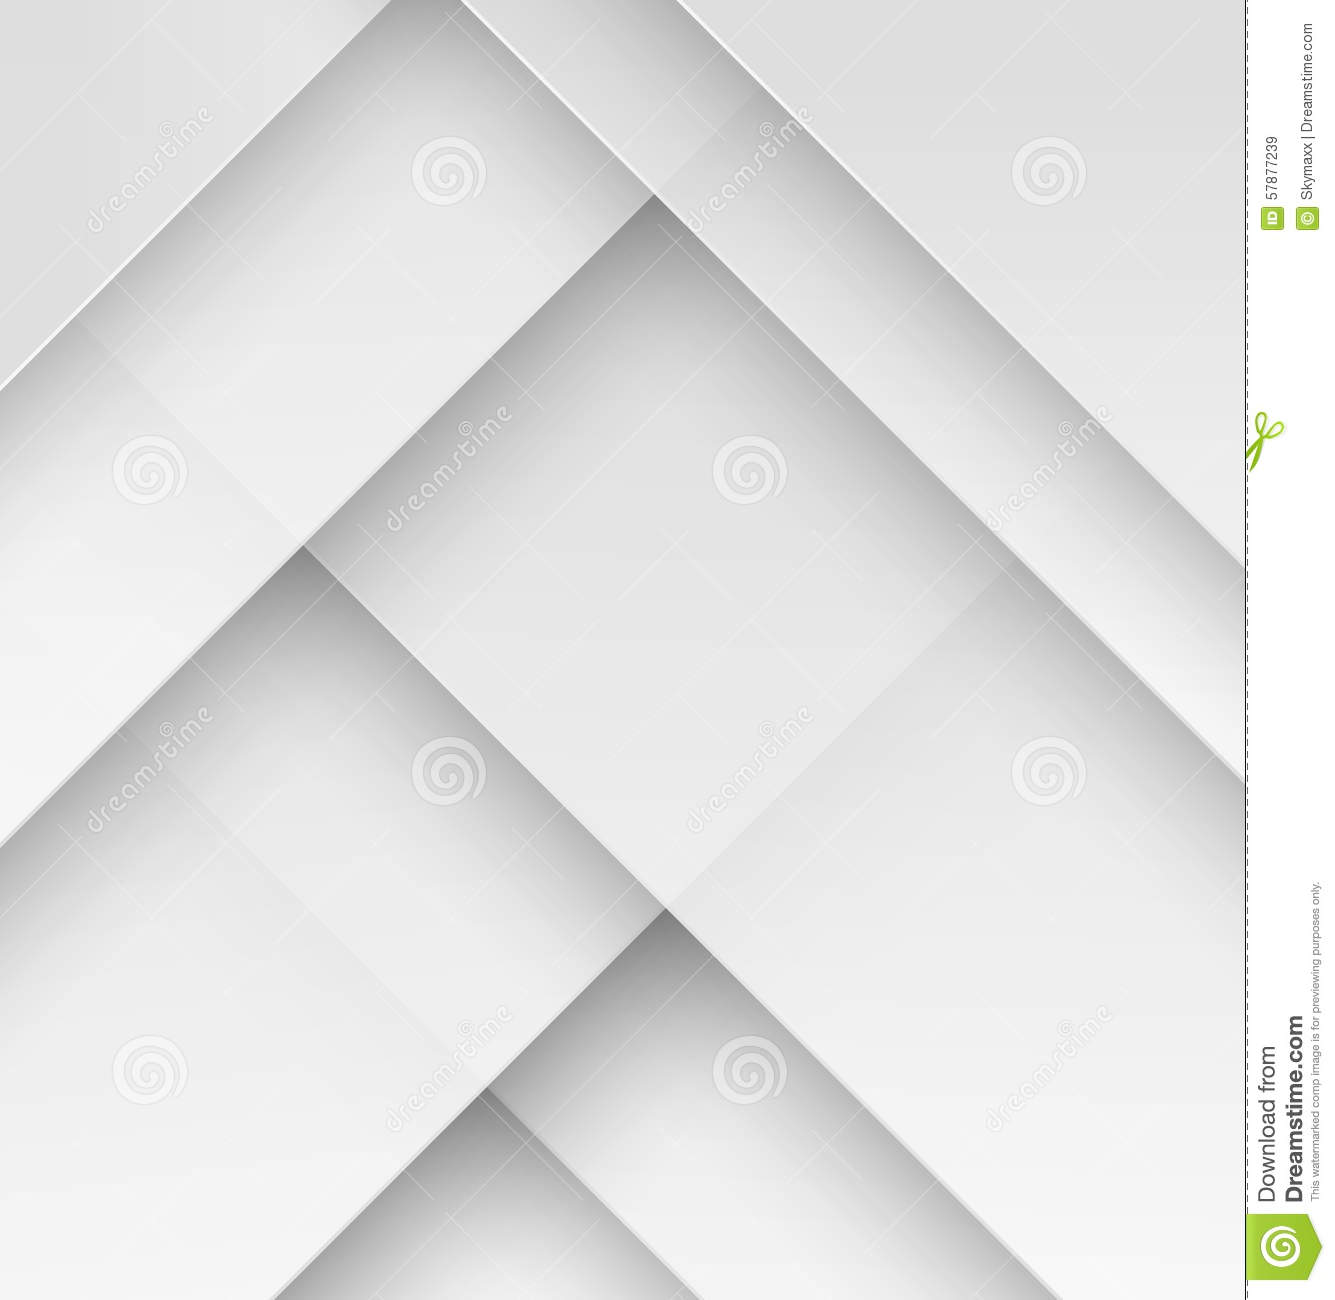 white paper material design wallpaper stock vector image